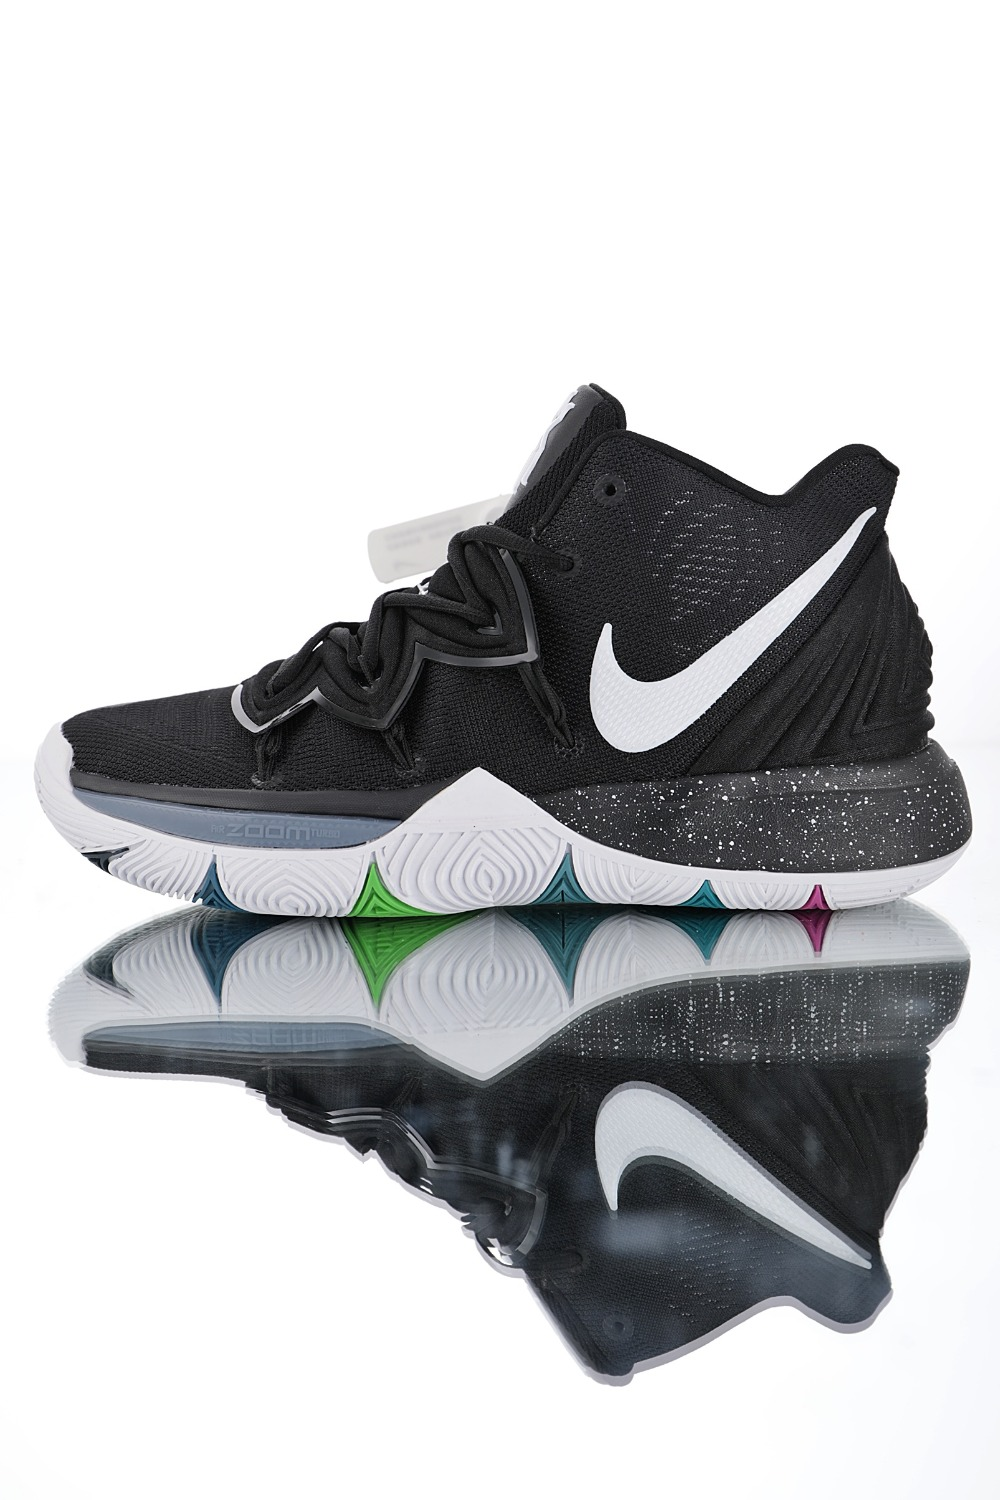 77317ceab5aa Detail Feedback Questions about Nike Kyrie 5 Generation Confetti ...